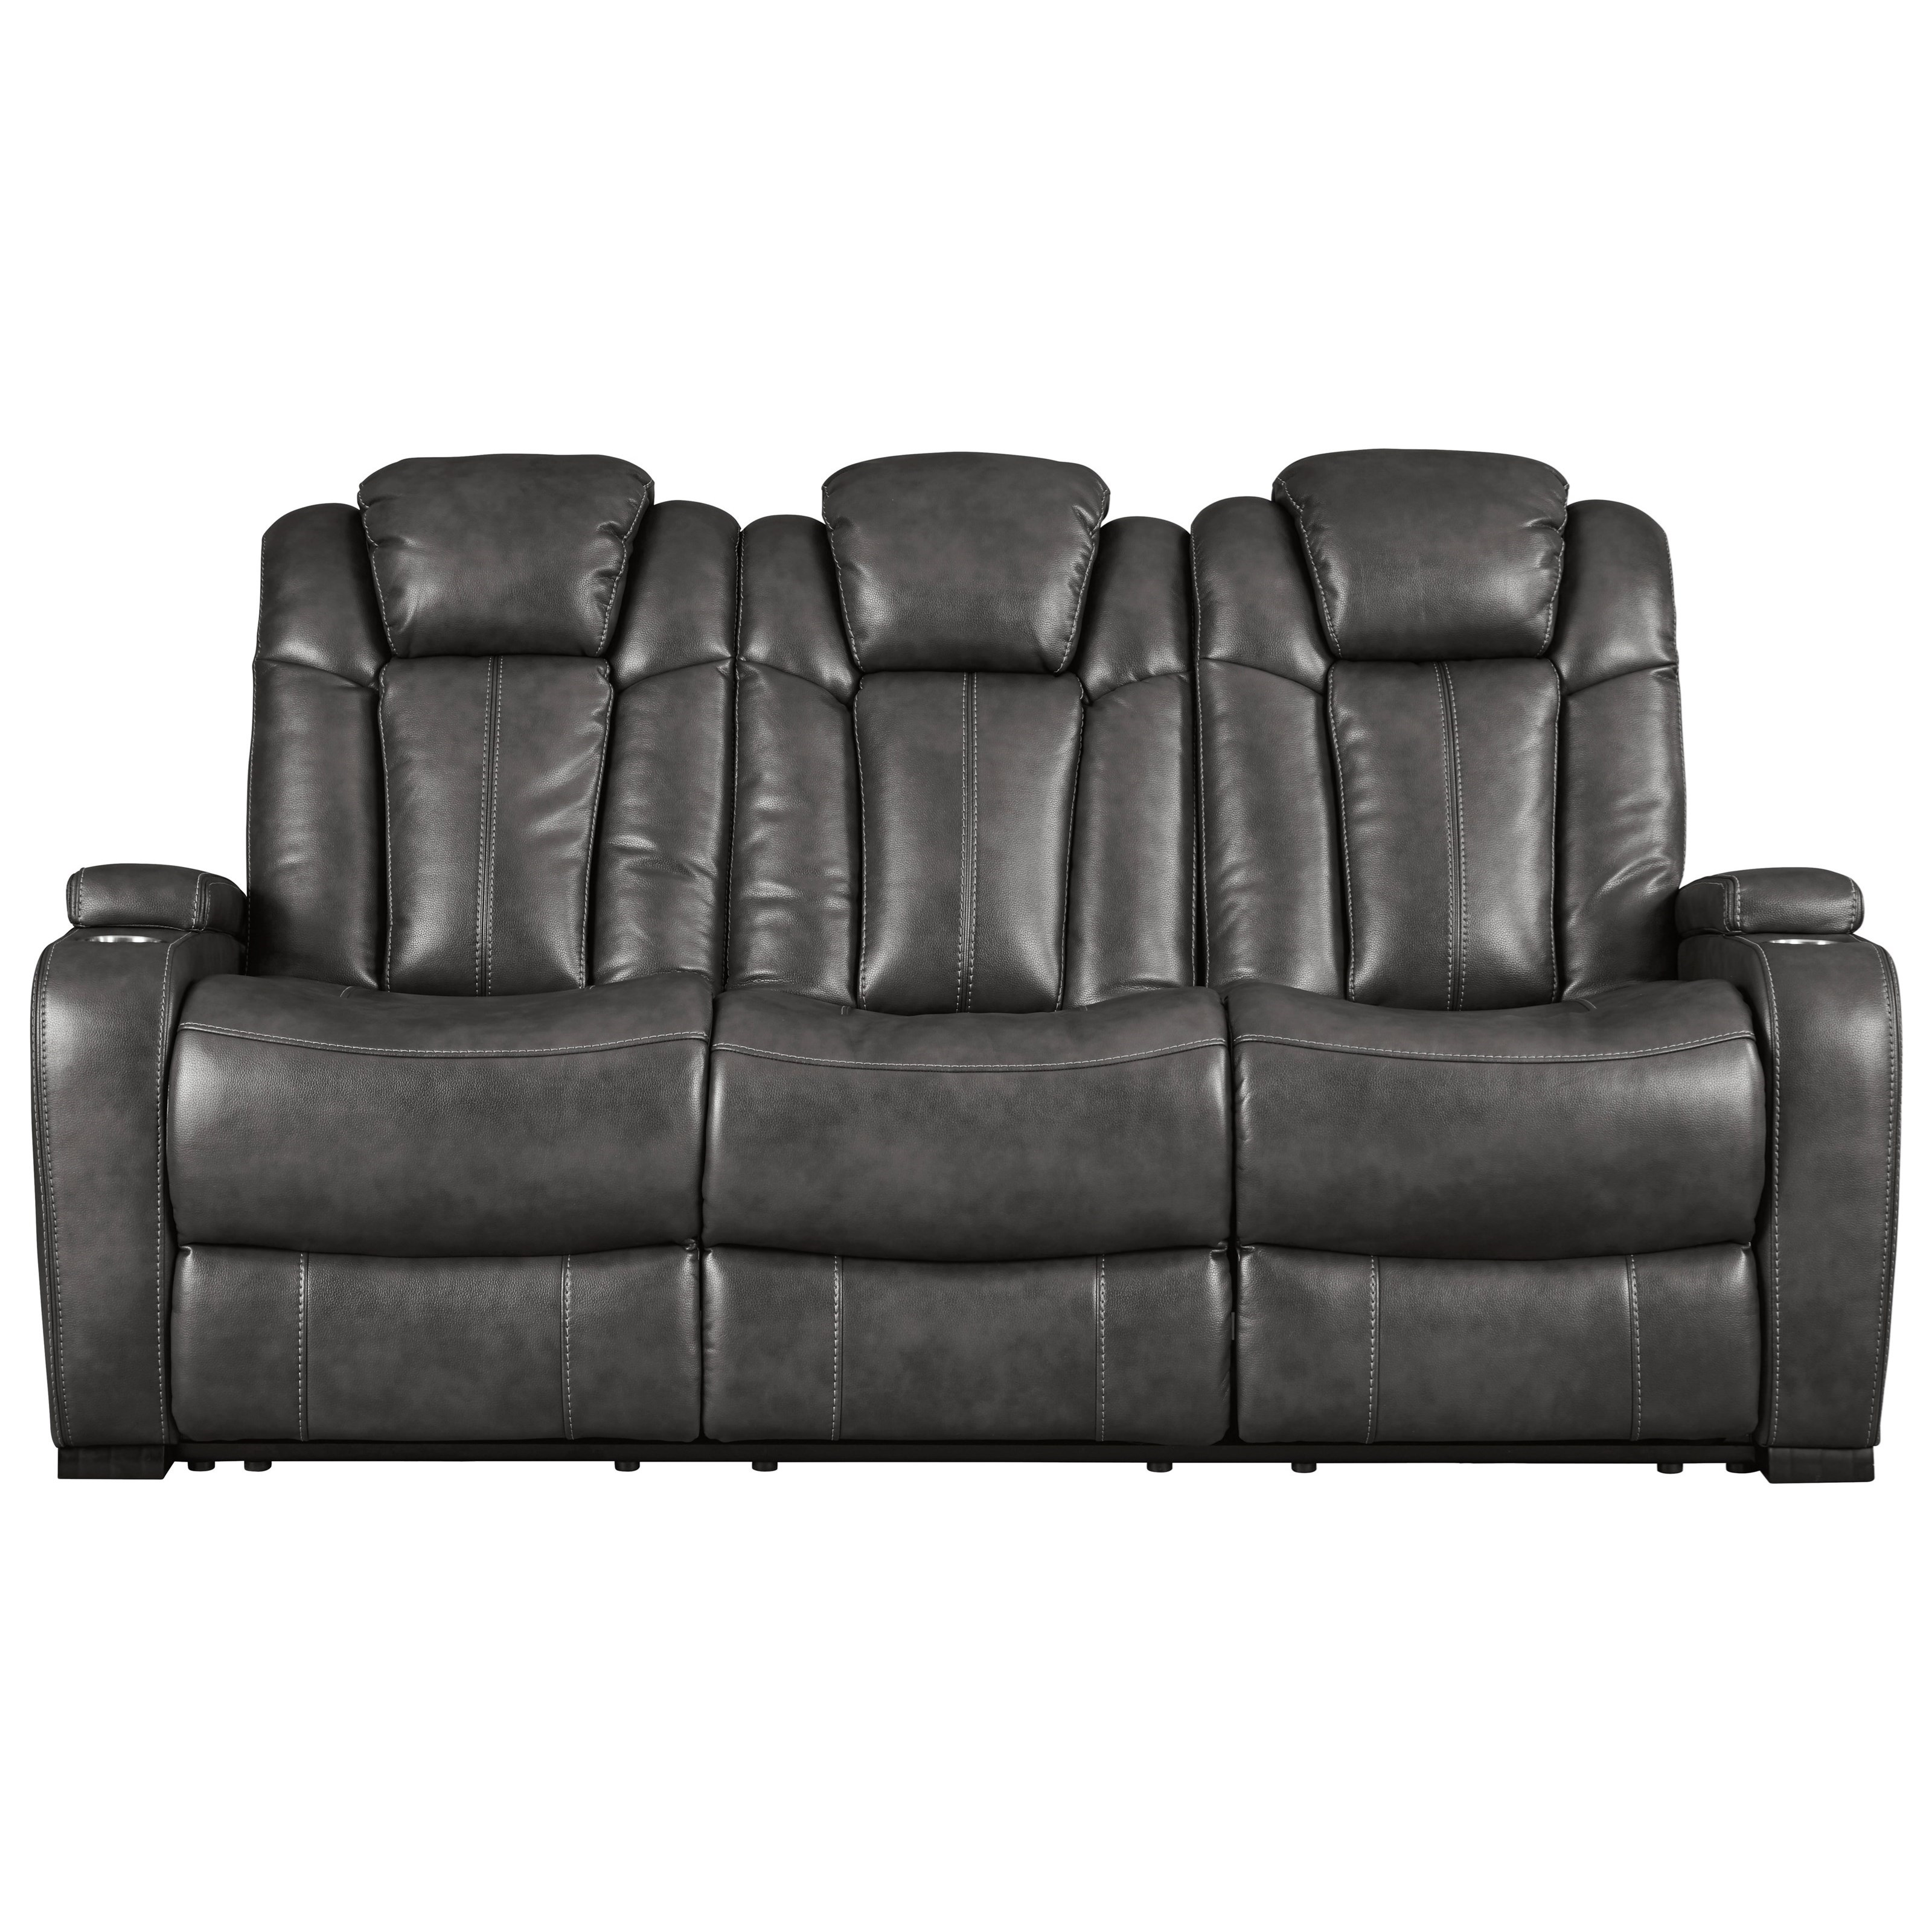 Turbulance Power Reclining Sofa w/ Adjustable Headrests by Signature Design by Ashley at Value City Furniture